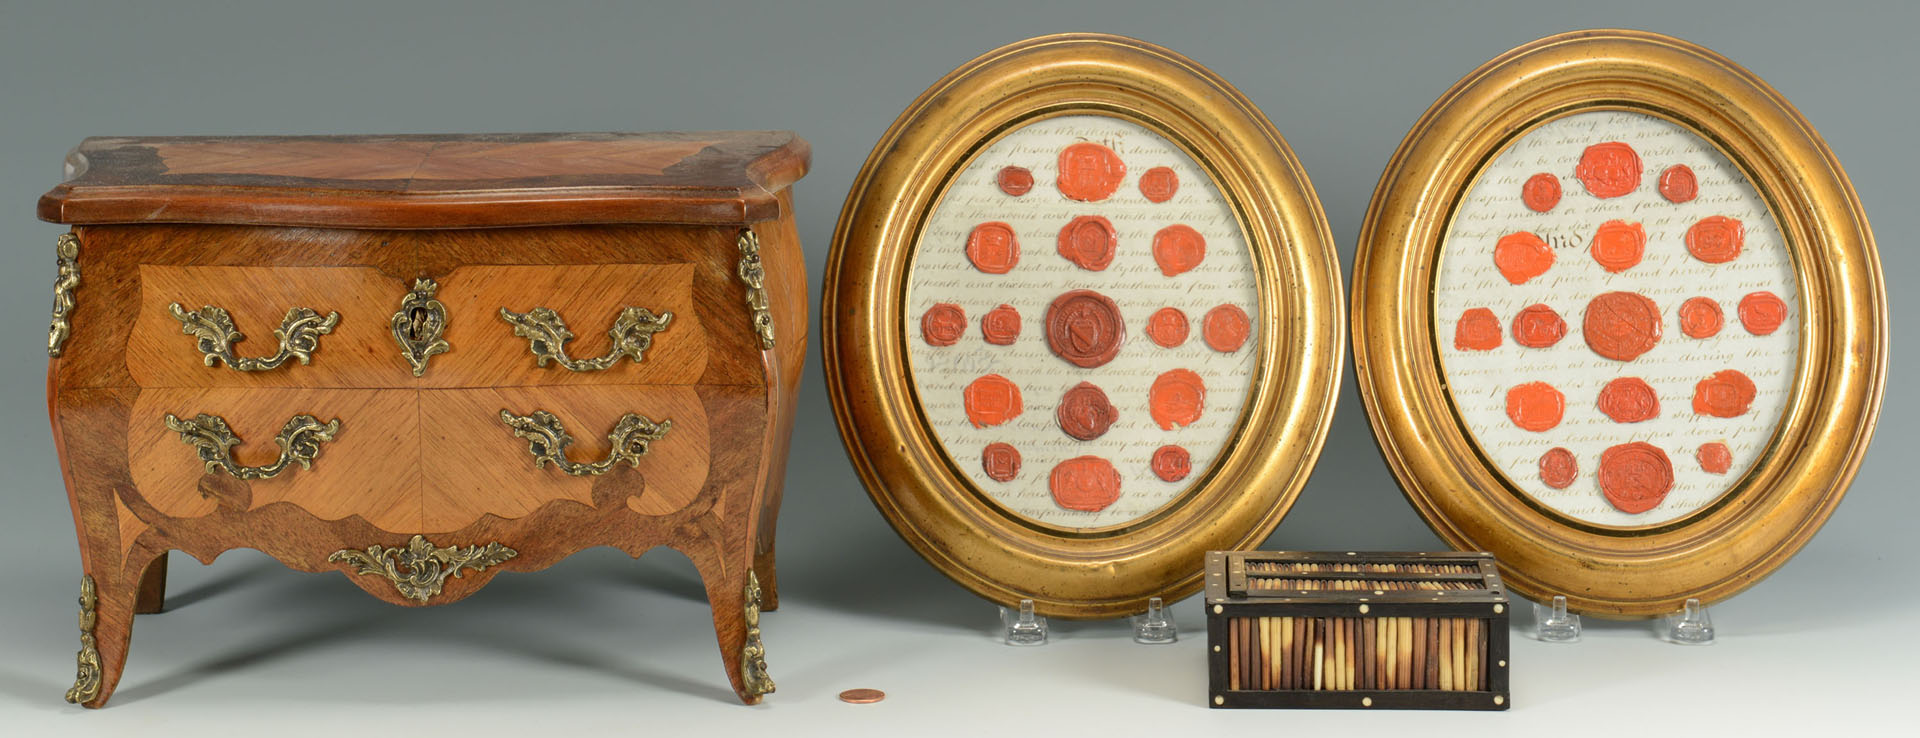 Quill Box, Framed Wax Seals, Miniature Chest